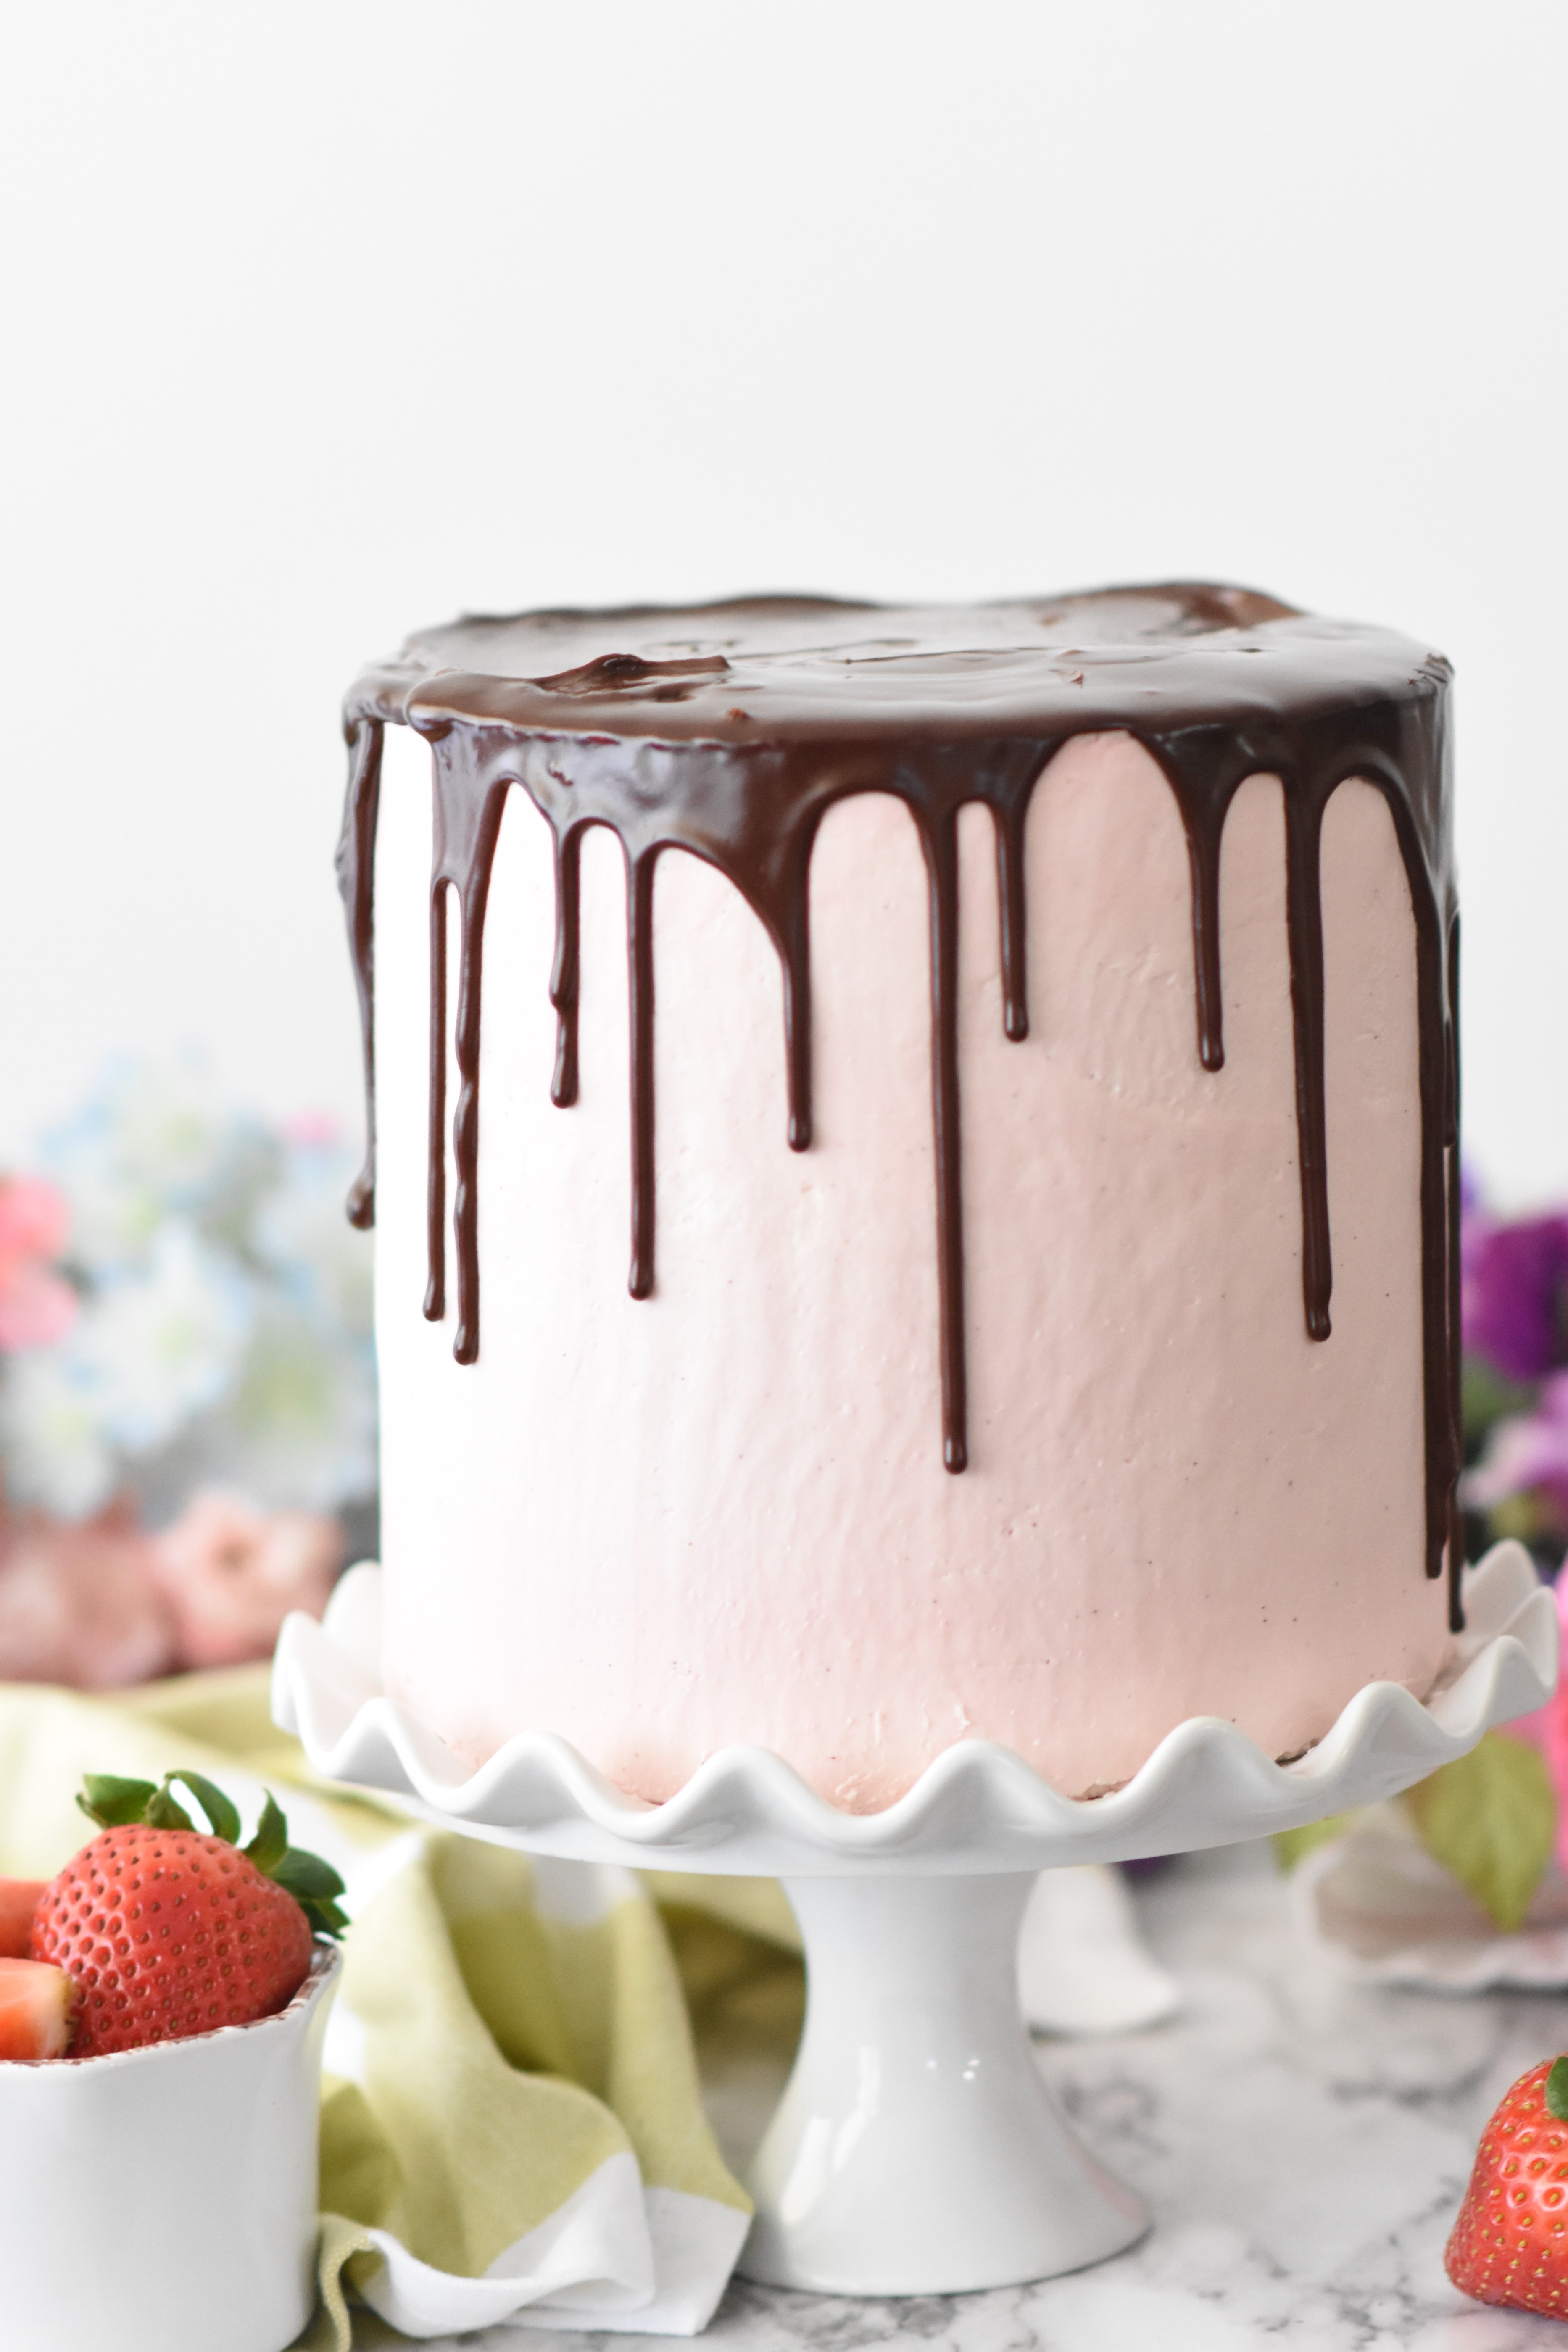 pink cake with chocolate on tray